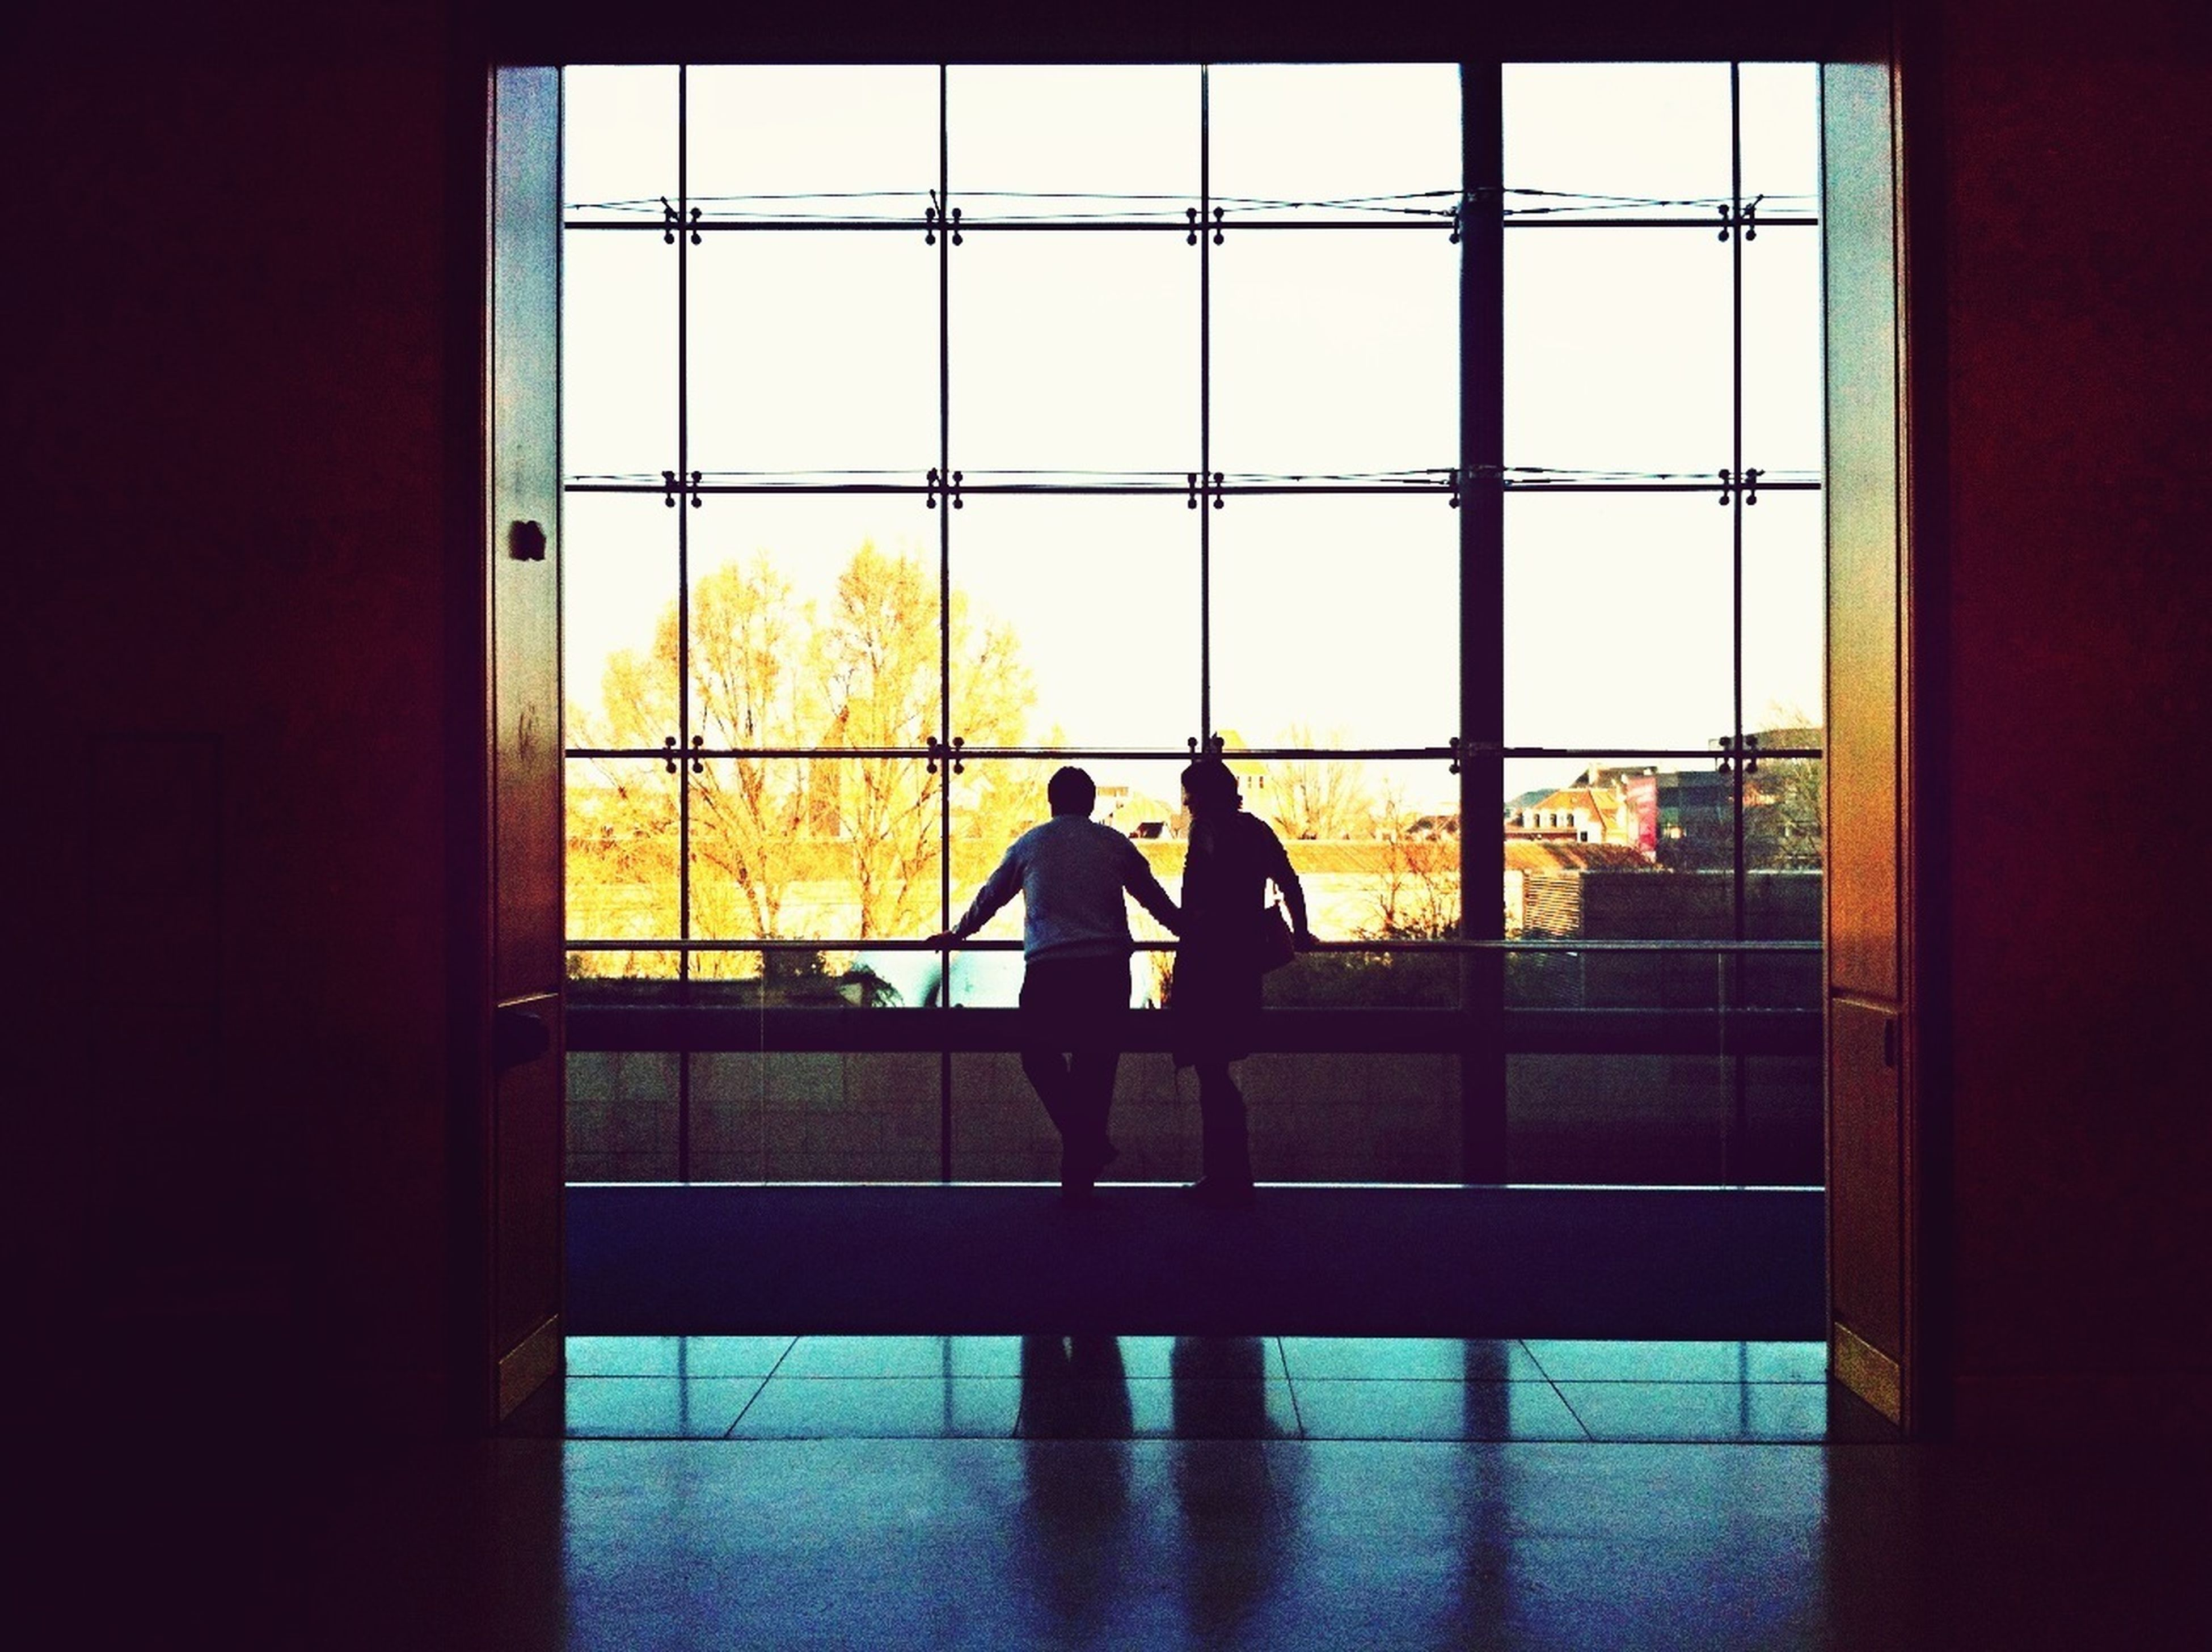 silhouette, indoors, window, men, architecture, built structure, glass - material, standing, lifestyles, sunset, rear view, looking through window, transparent, person, full length, railing, building exterior, leisure activity